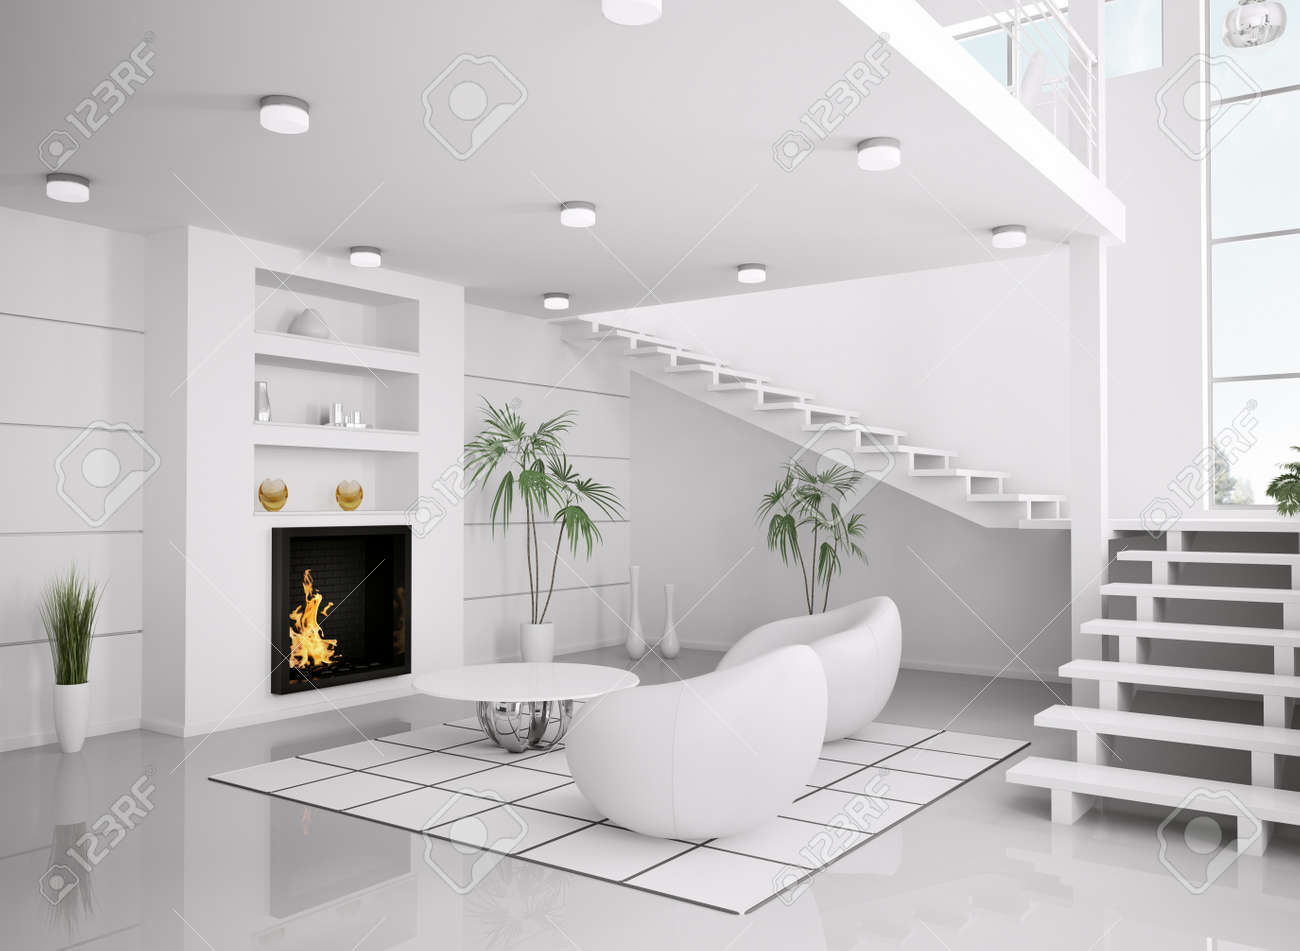 Modern White Interior Of Living Room With Fireplace And Staircase ...